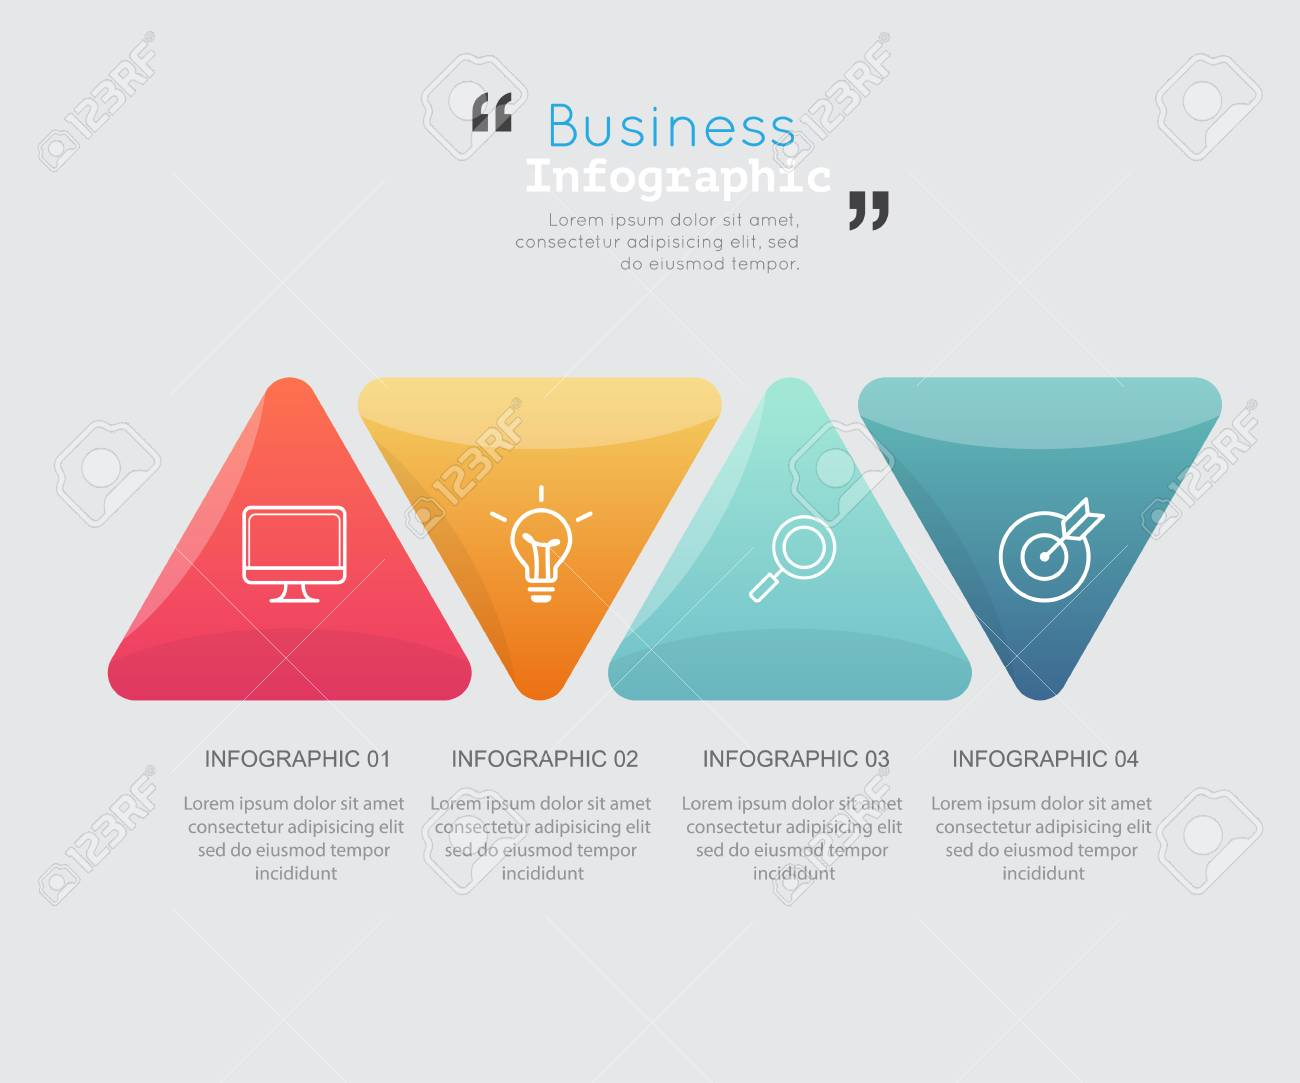 Modern business infographic Vector illustration. Stock Photo - 73489515